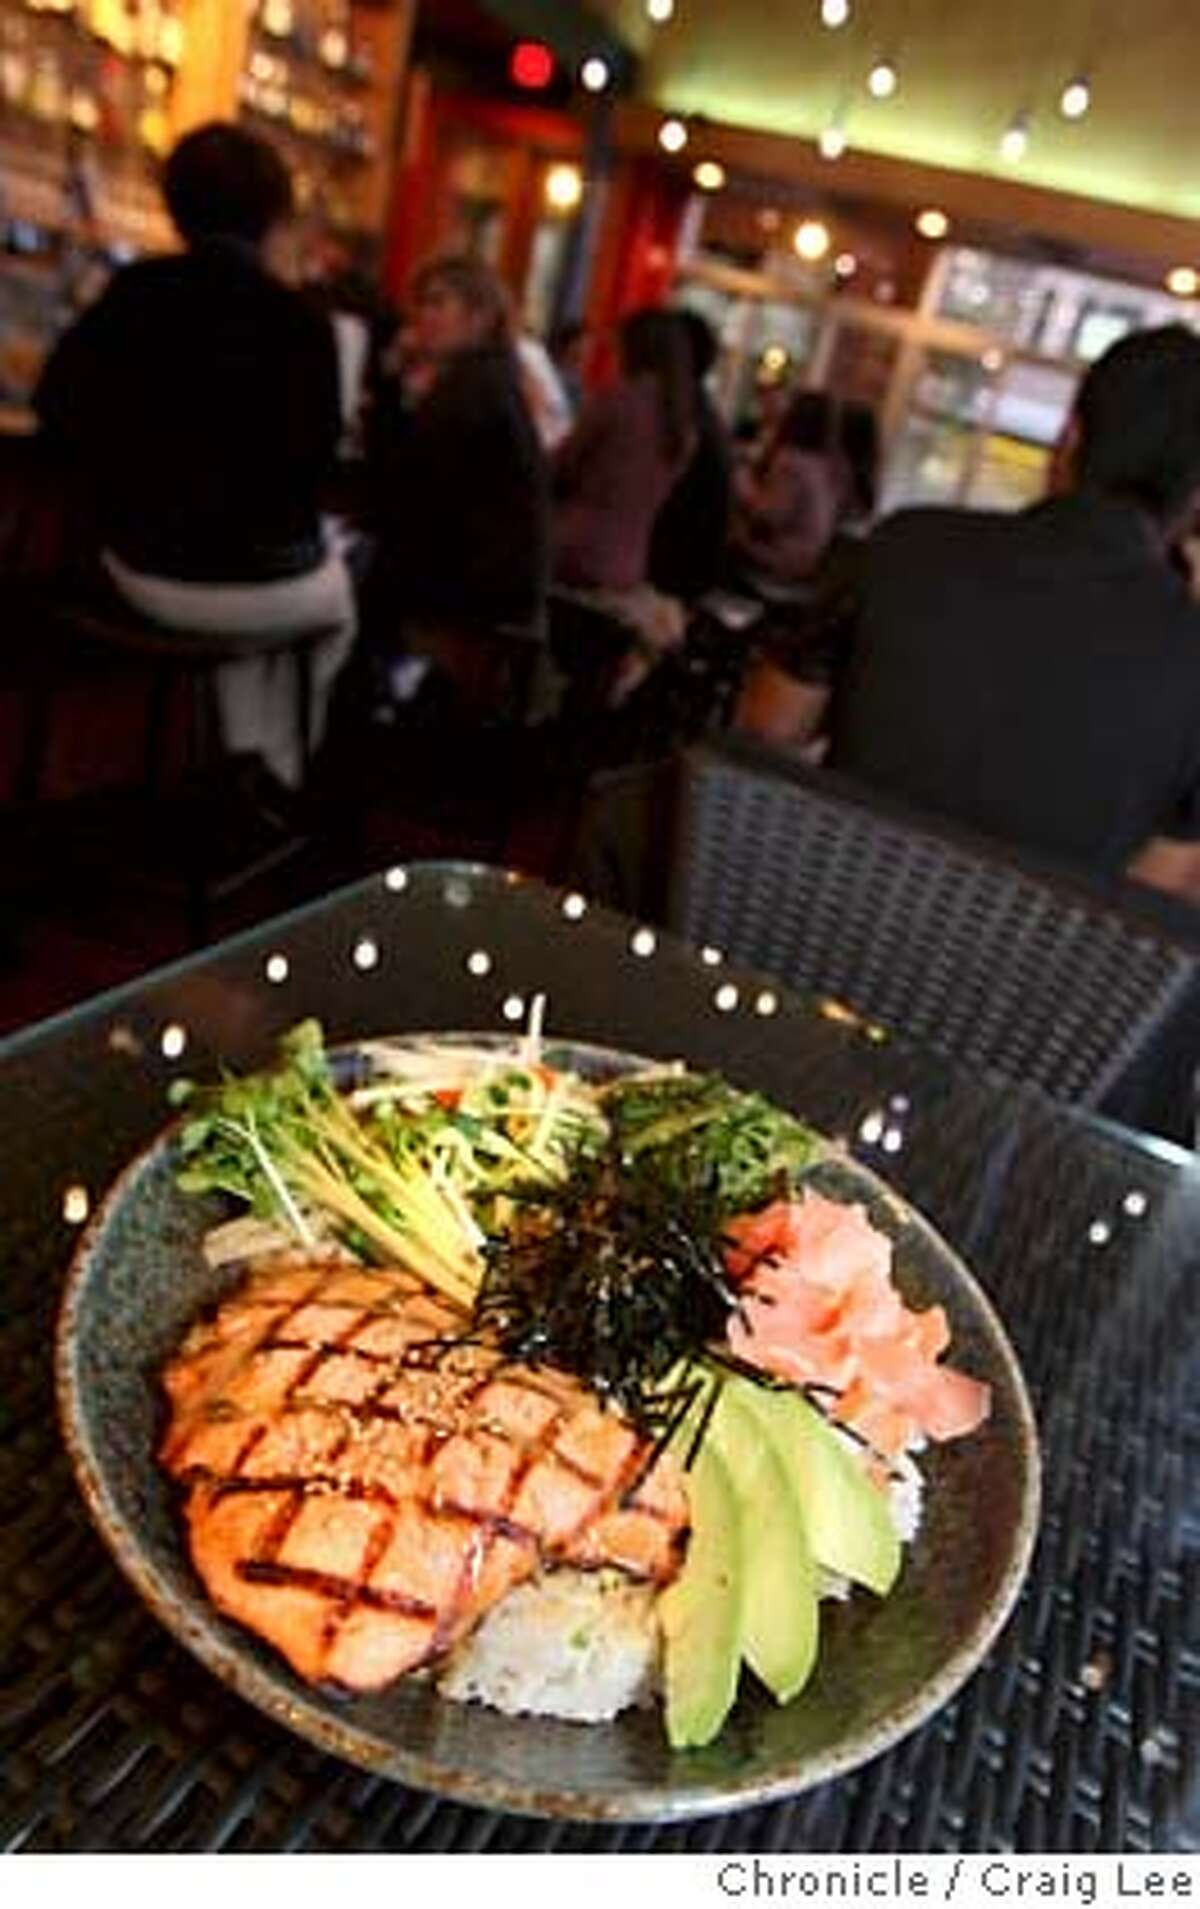 ###Live Caption:A salmon wasabi rice bowl is photographed in the bar area of the restaurant. Pacific Catch is located at 1200 Ninth Ave. in San Francisco. Photo by Brant Ward / San Francisco Chronicle###Caption History:A salmon wasabi rice bowl is photographed in the bar area of the restaurant. Pacific Catch is located at 1200 Ninth Ave. in San Francisco. Photo by Brant Ward / San Francisco Chronicle###Notes:###Special Instructions: